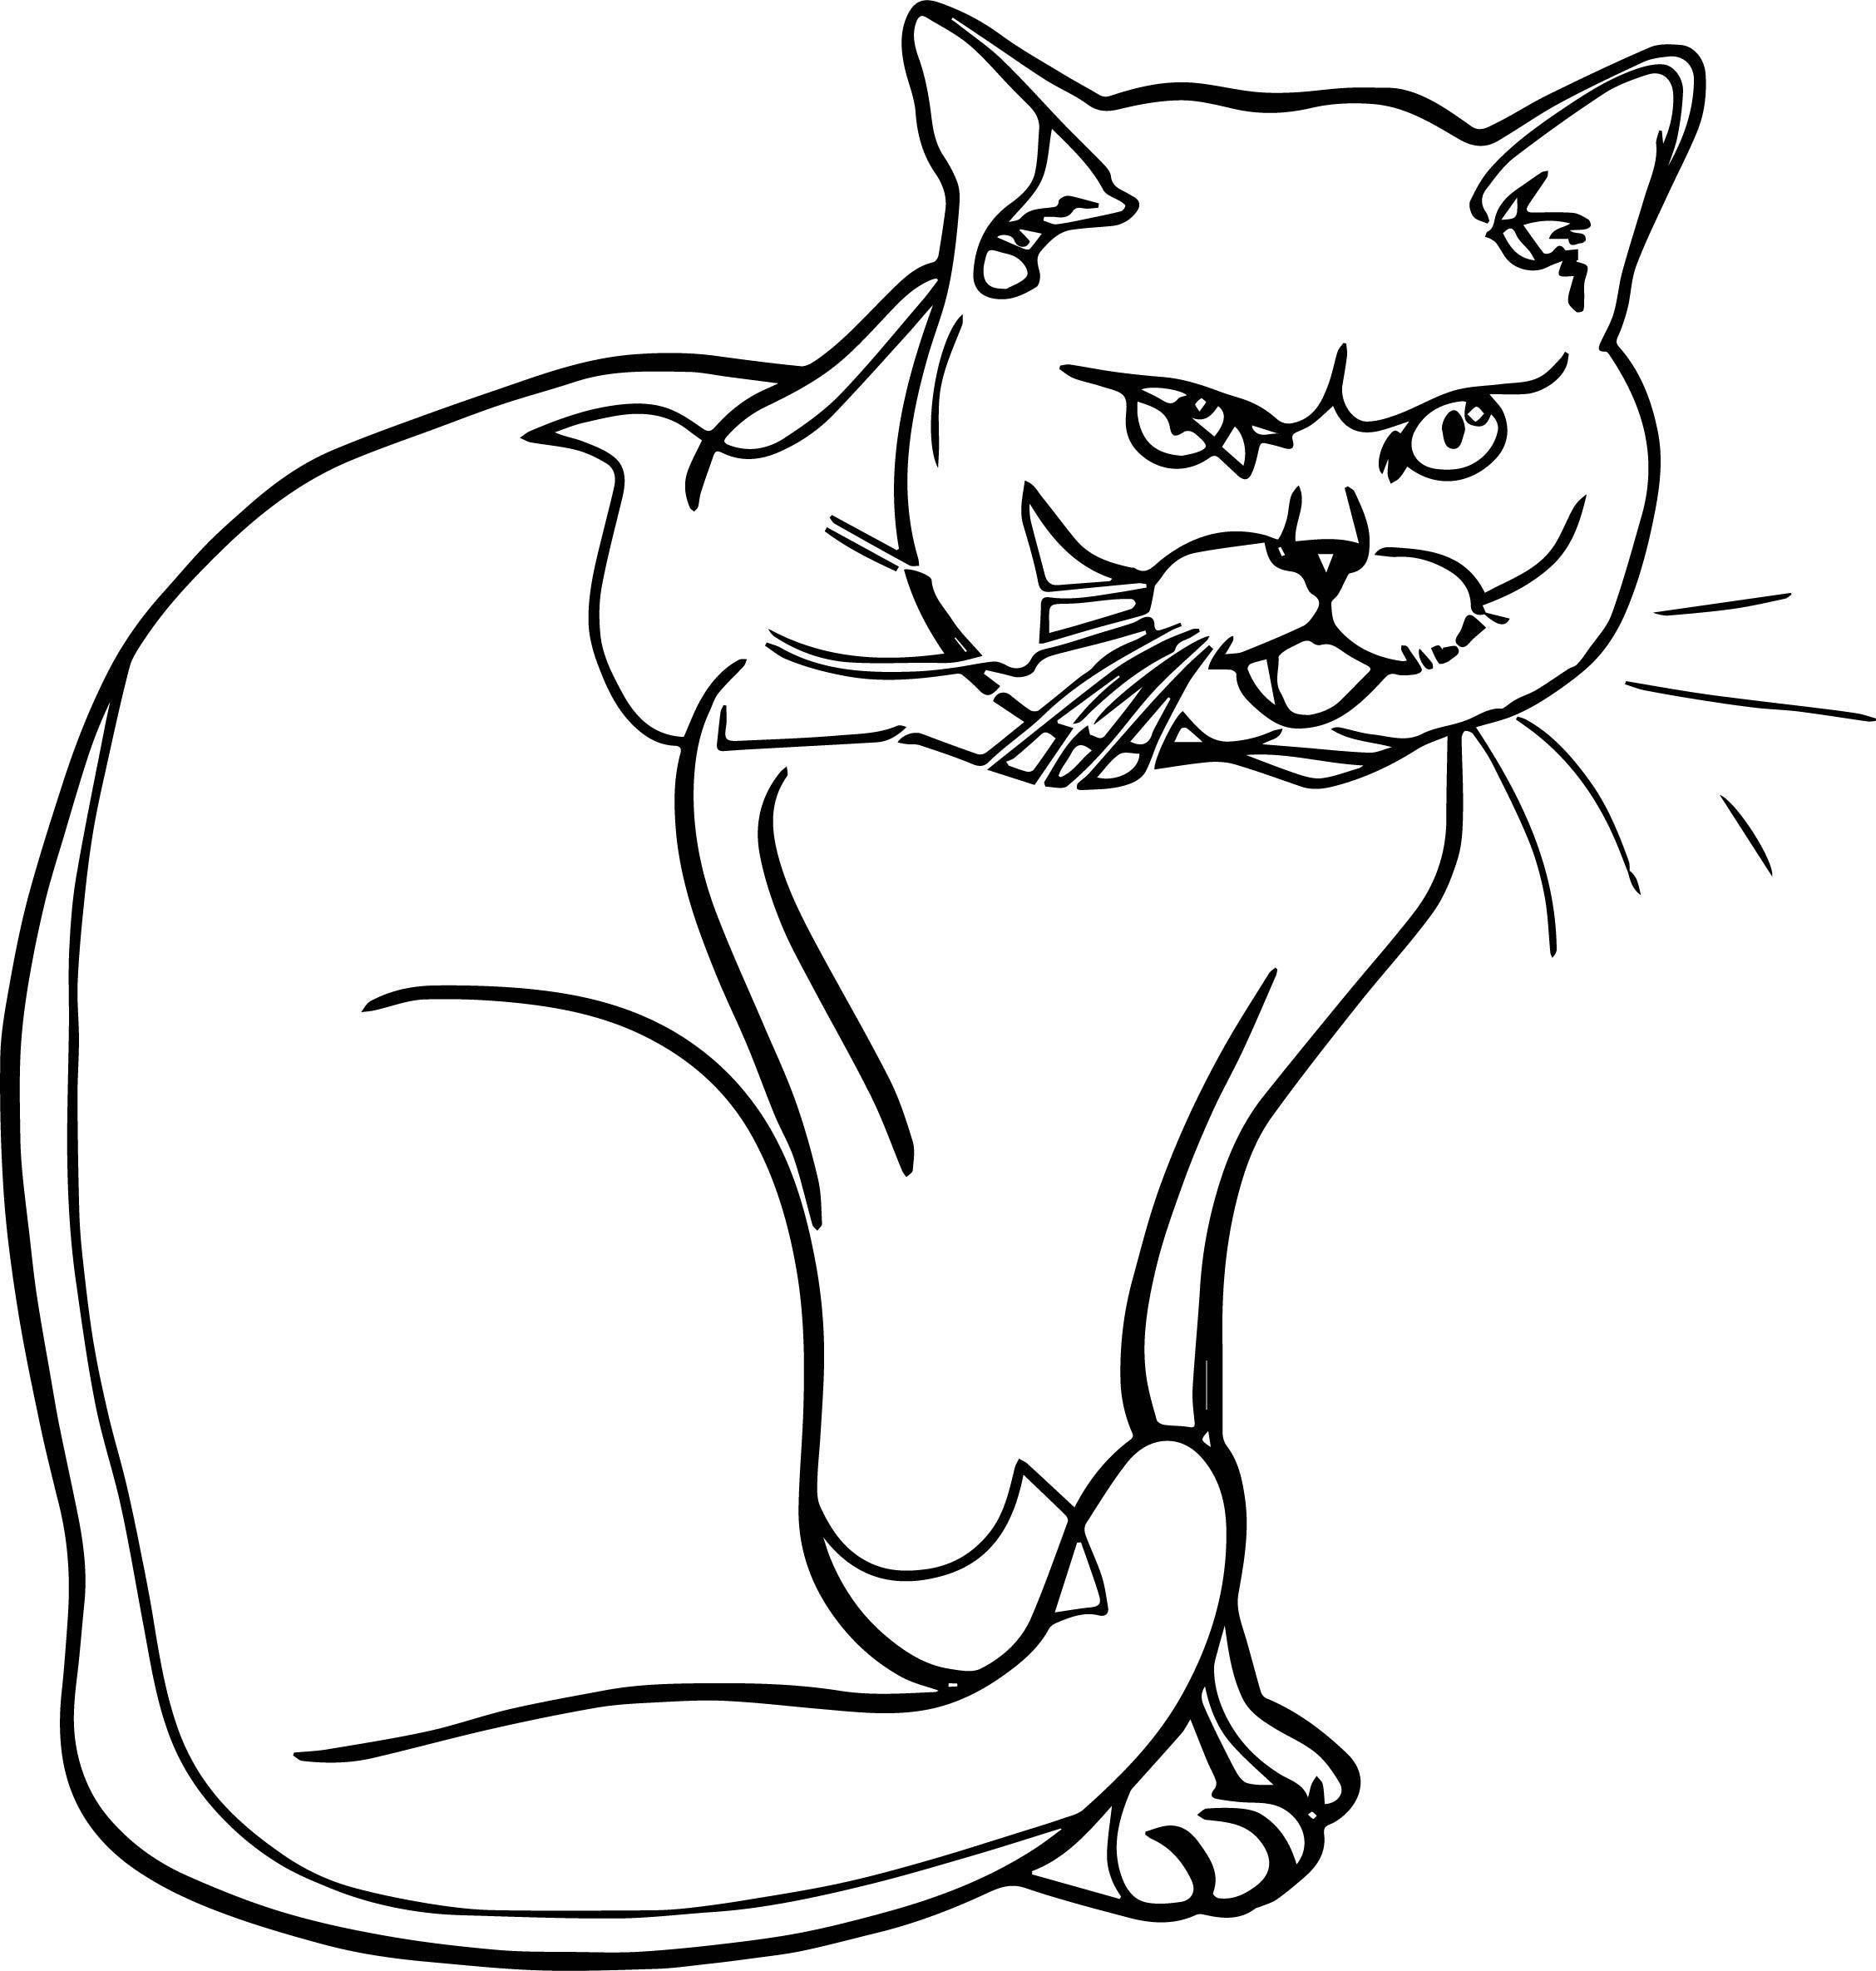 Try Cat Coloring Page